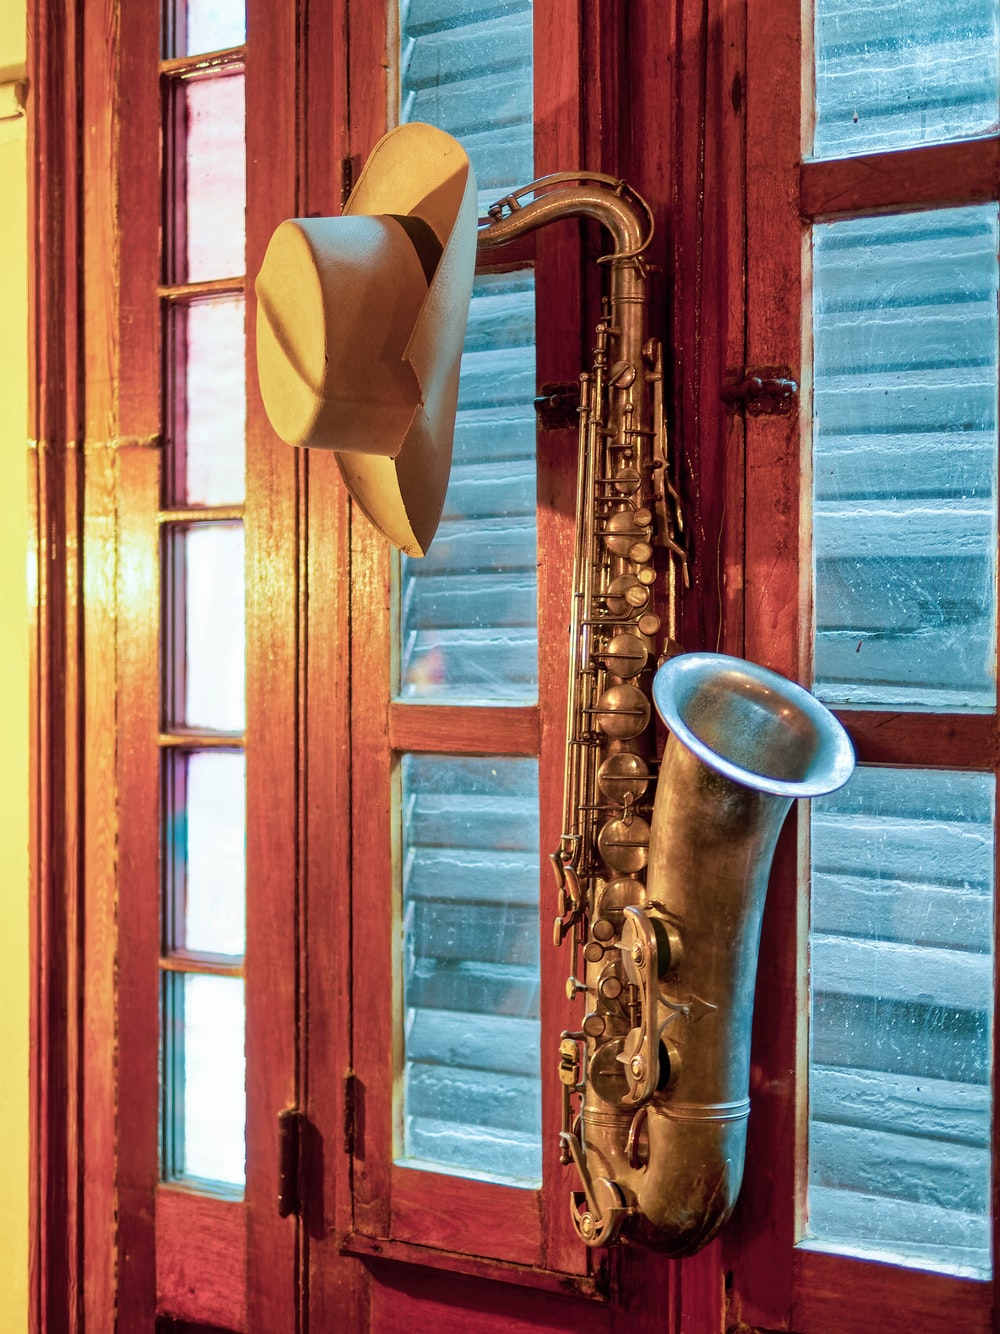 brown tenor saxophone mounted on wall